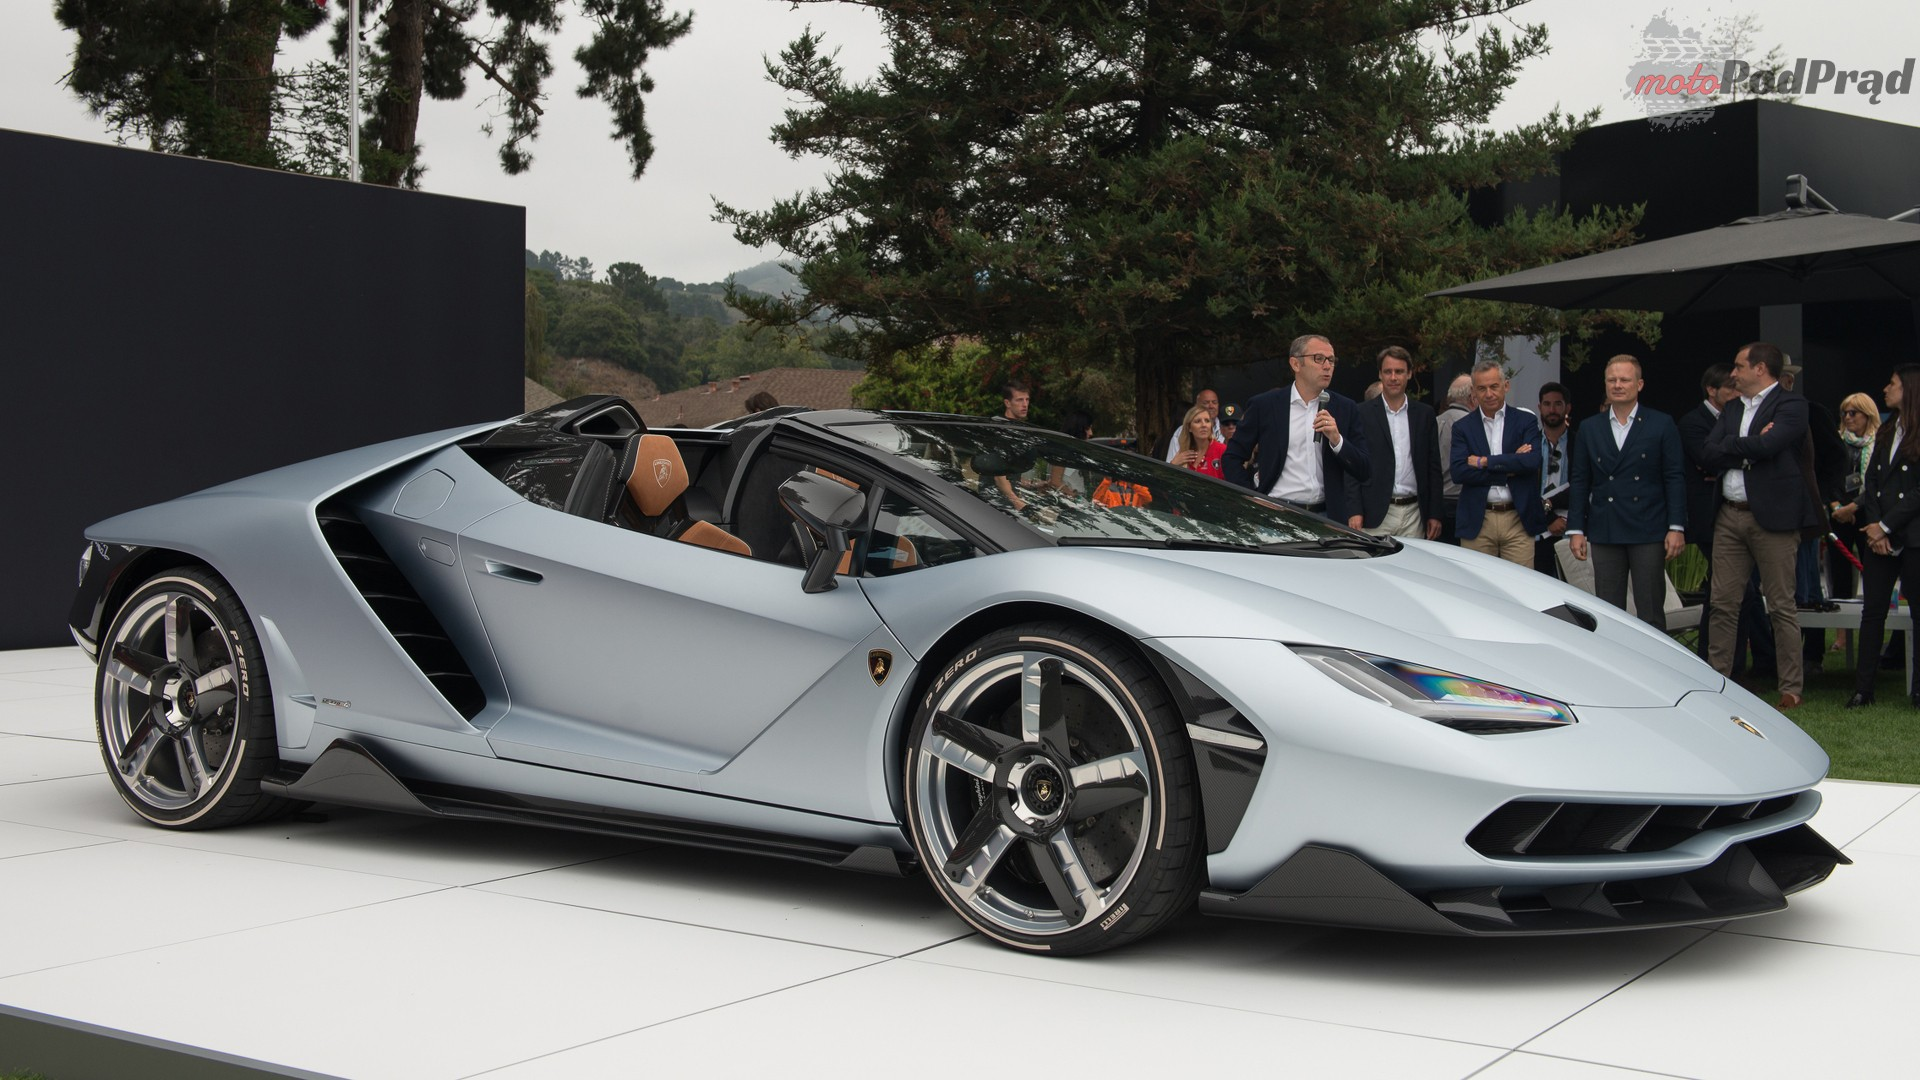 lamborghini centenario roadster Goodwood Festival of Speed   spodziewane premiery